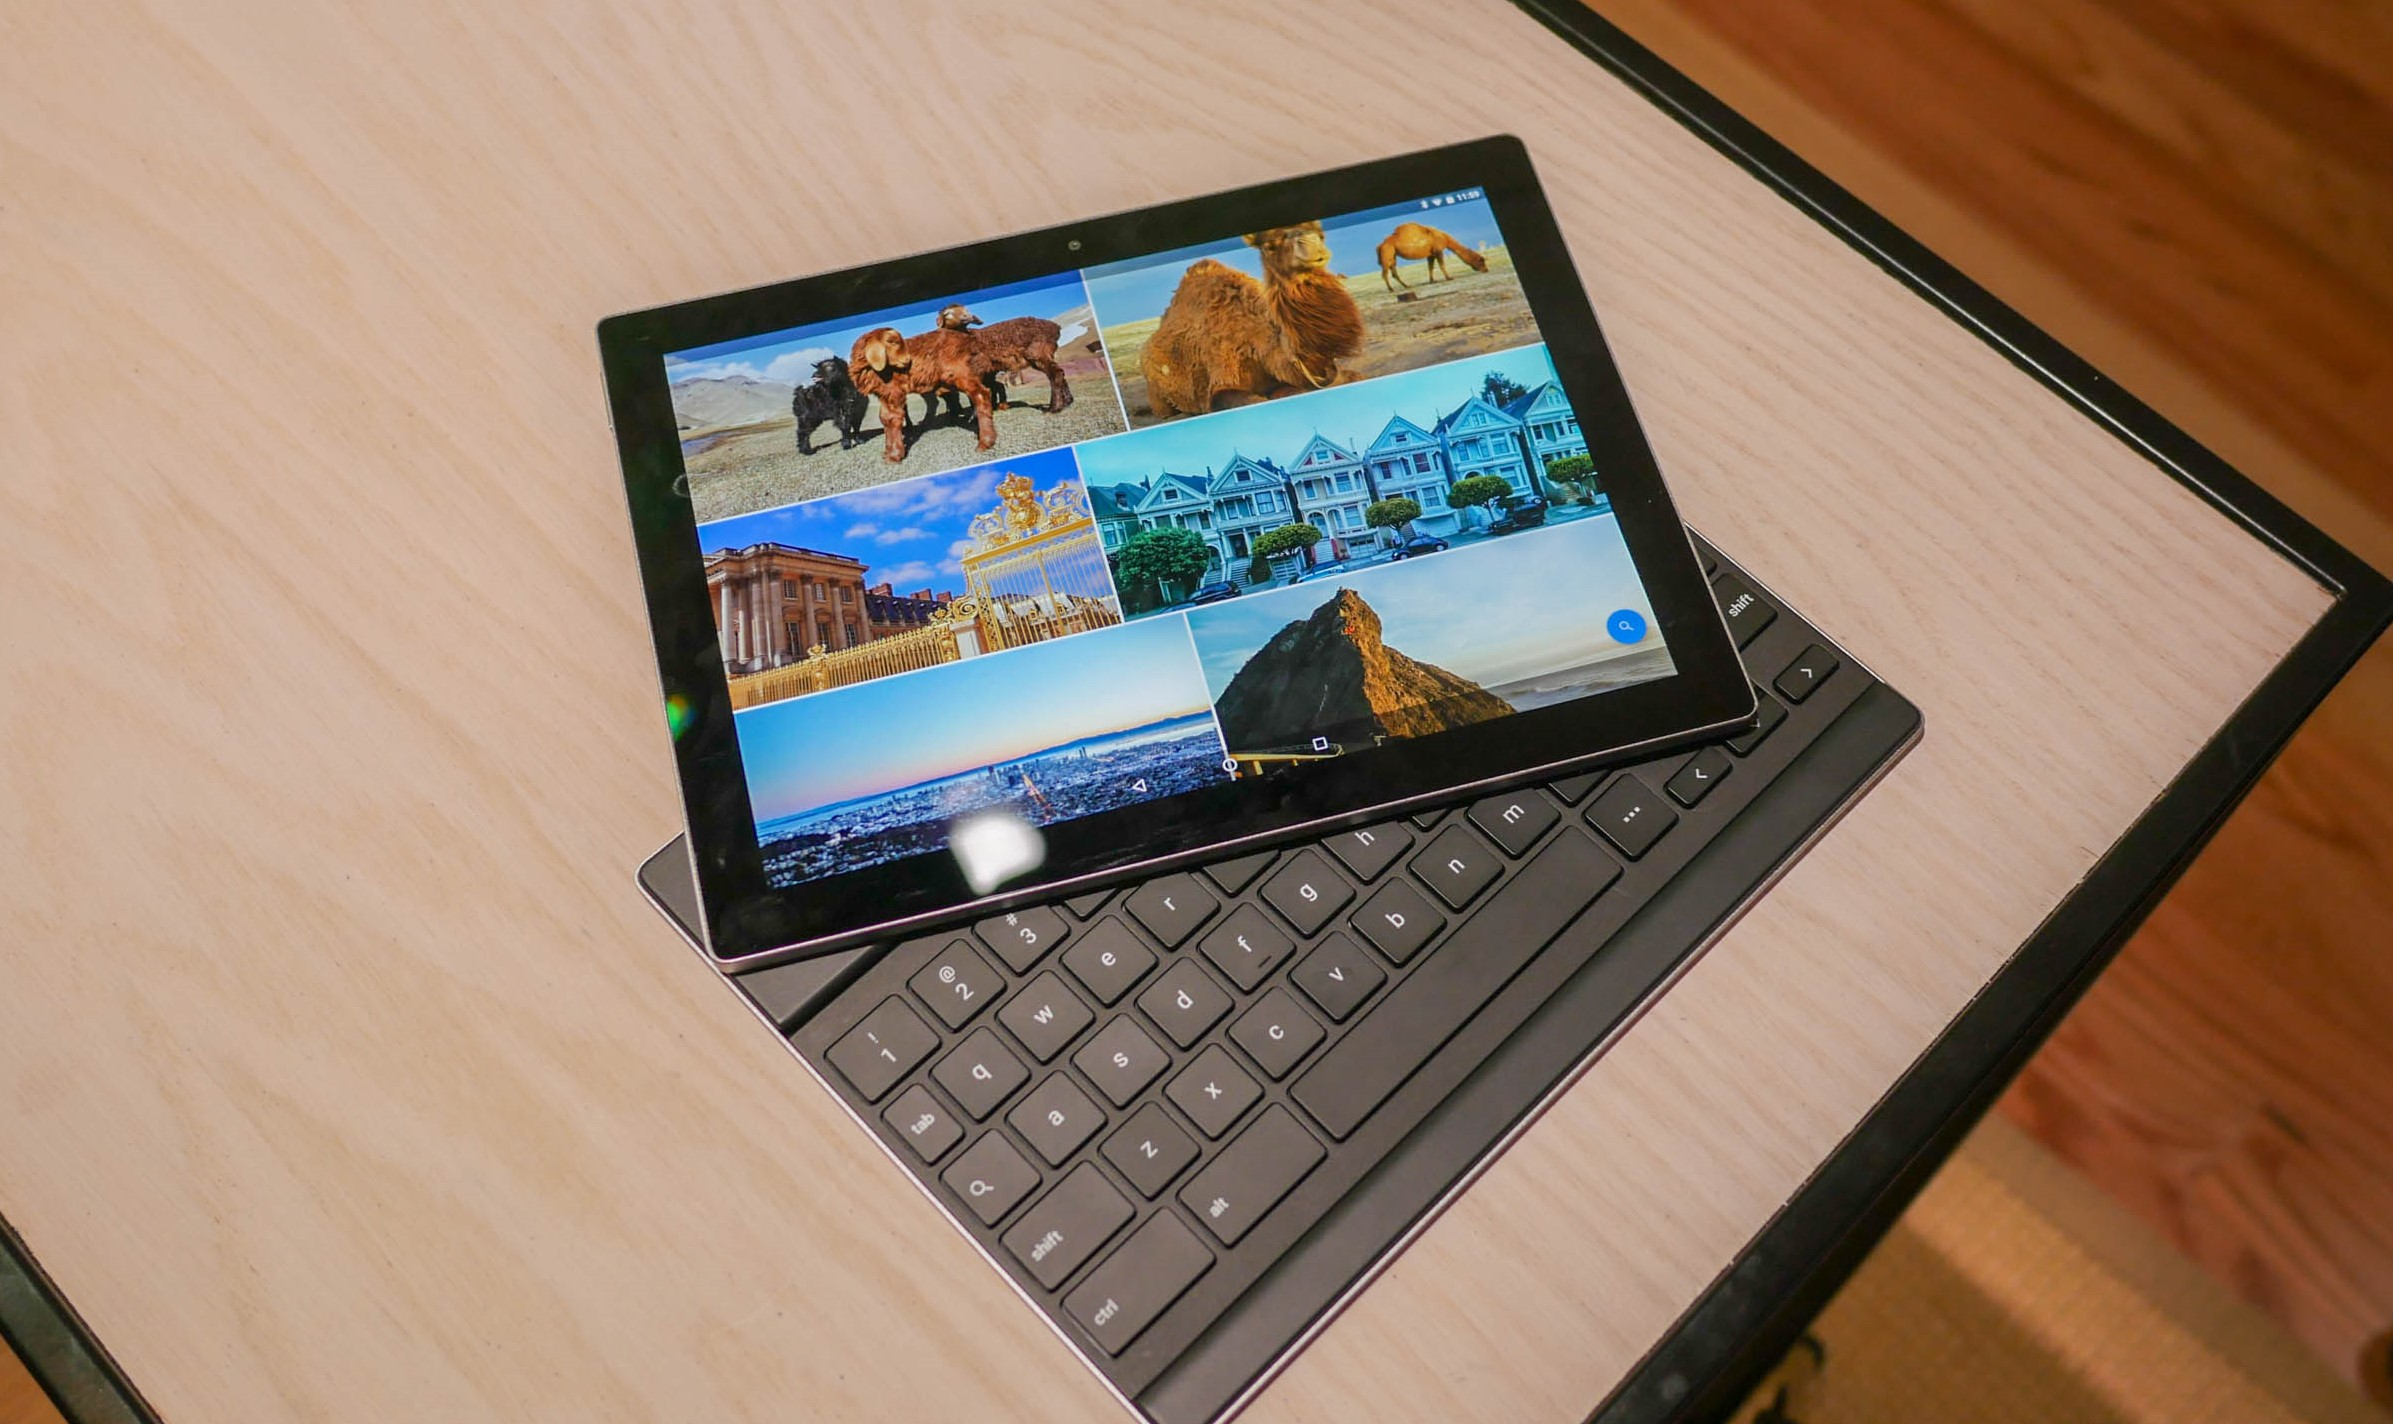 pixel-c-first-look-aa-11-of-12